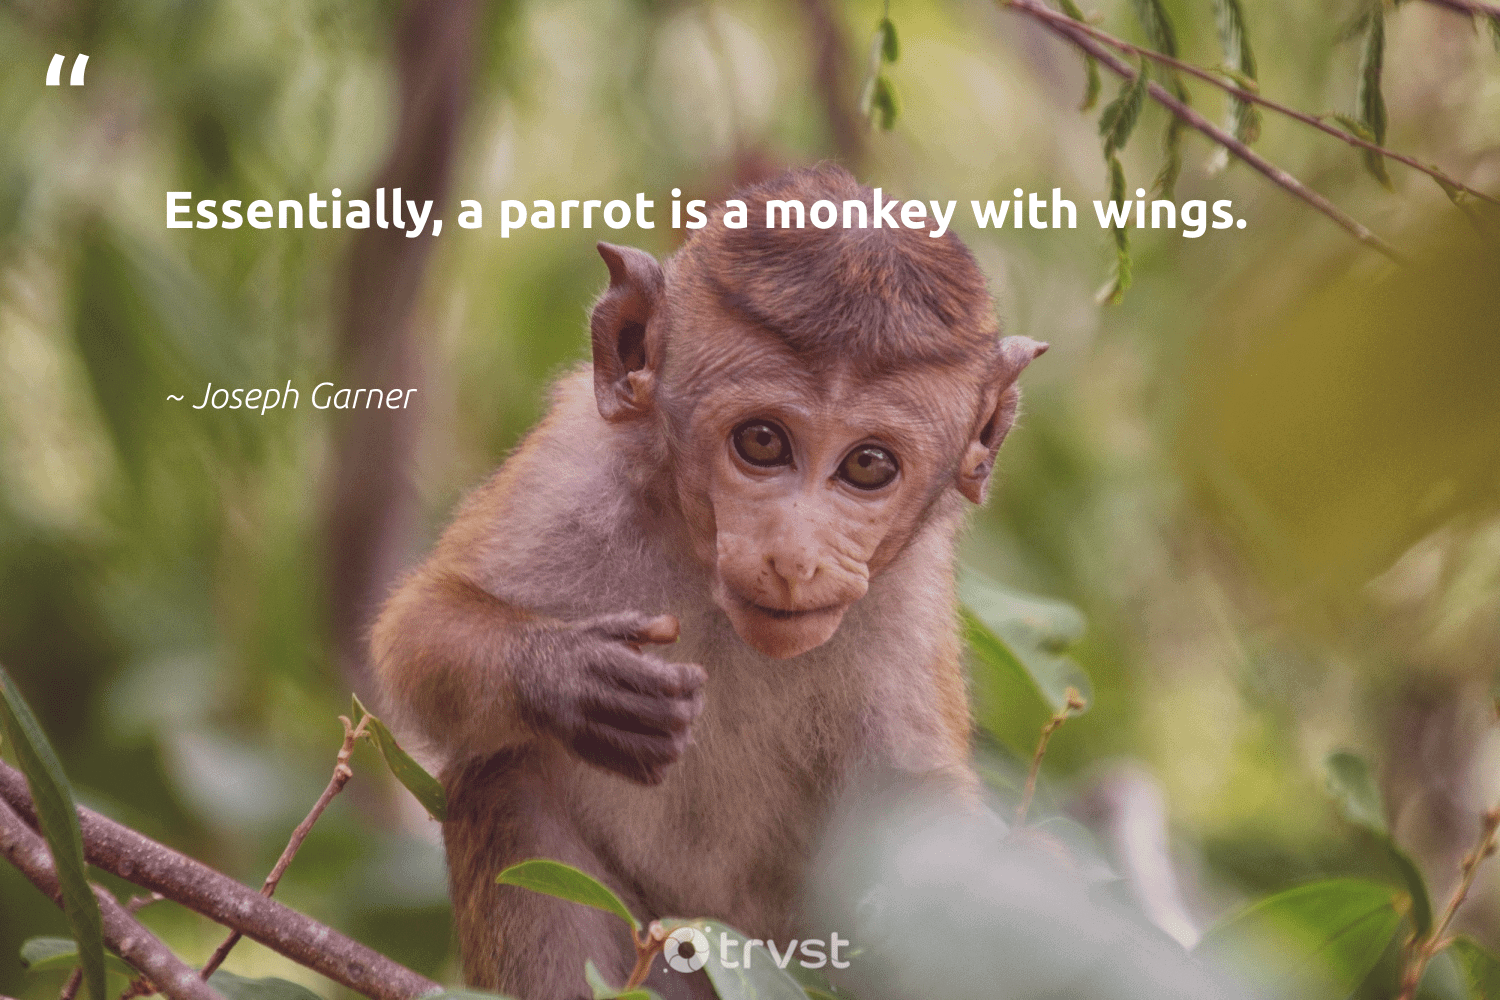 """""""Essentially, a parrot is a monkey with wings.""""  - Joseph Garner #trvst #quotes #parrot #monkey #protectnature #ecoconscious #wild #dotherightthing #biodiversity #bethechange #majesticwildlife #gogreen"""